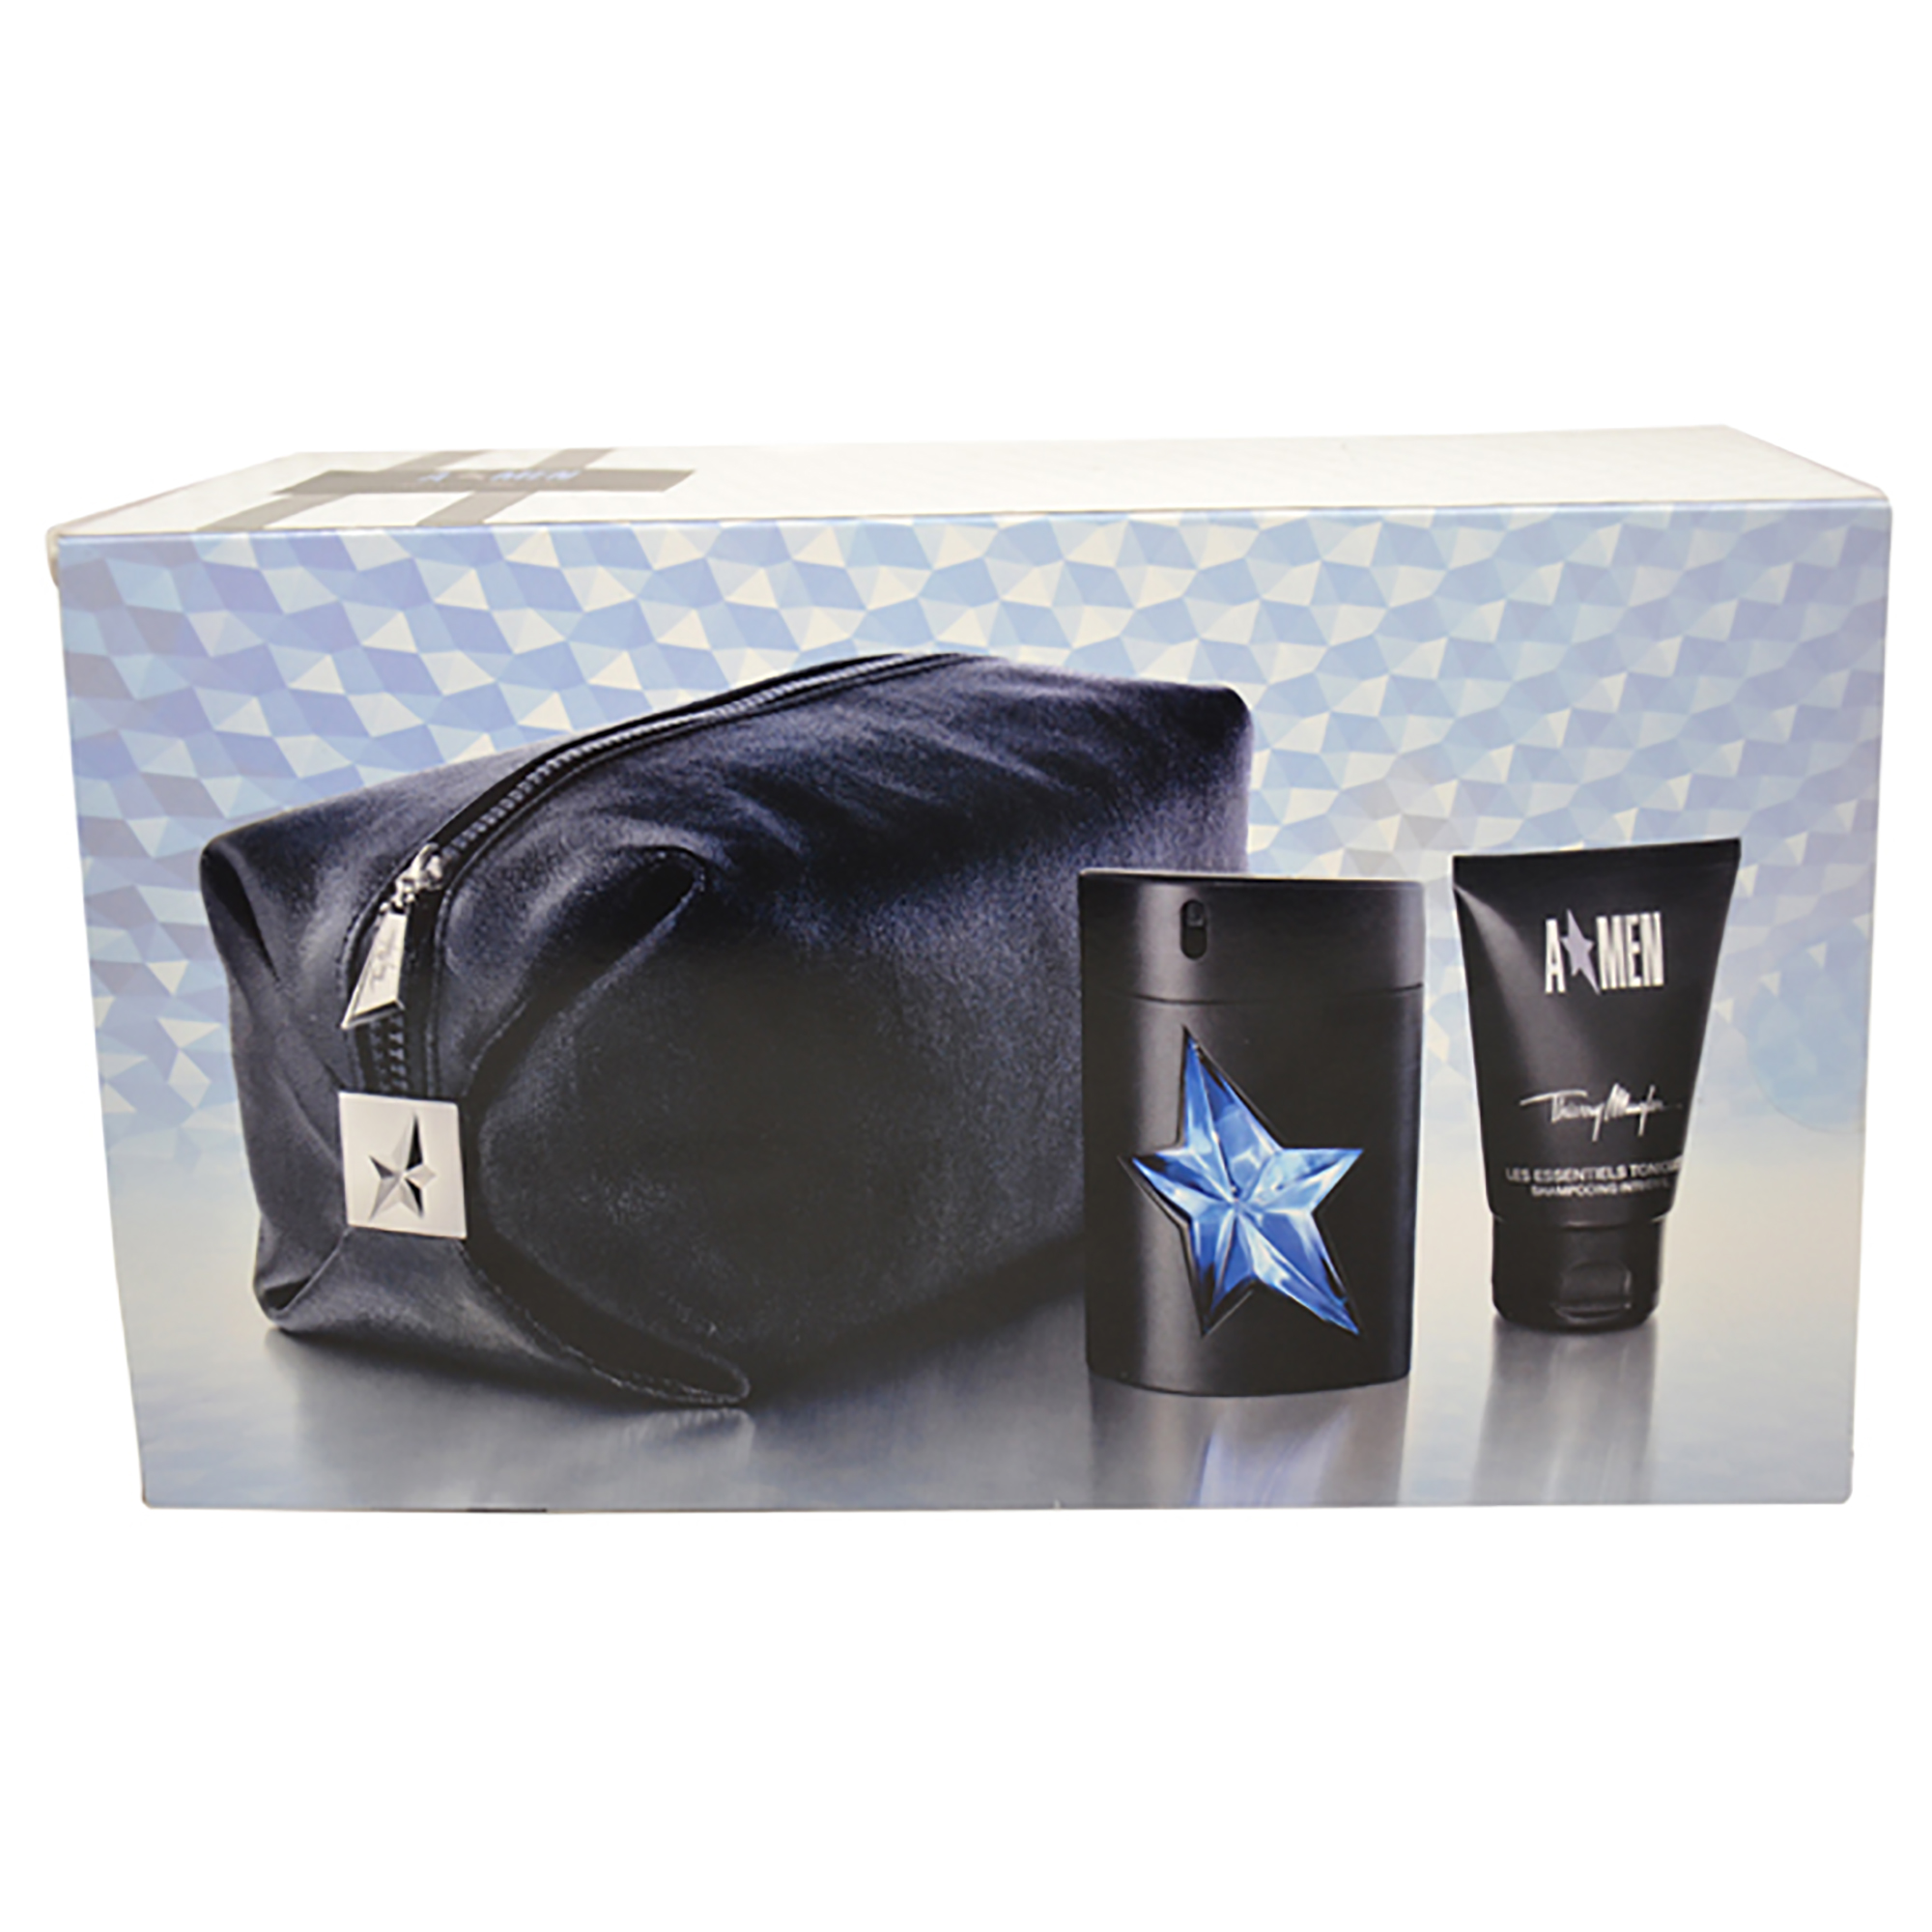 Angel by Thierry Mugler for Men - 2 Pc Gift Set 1.7oz EDT Spray (Rubber Flask), 1.7oz Shampooing Integral